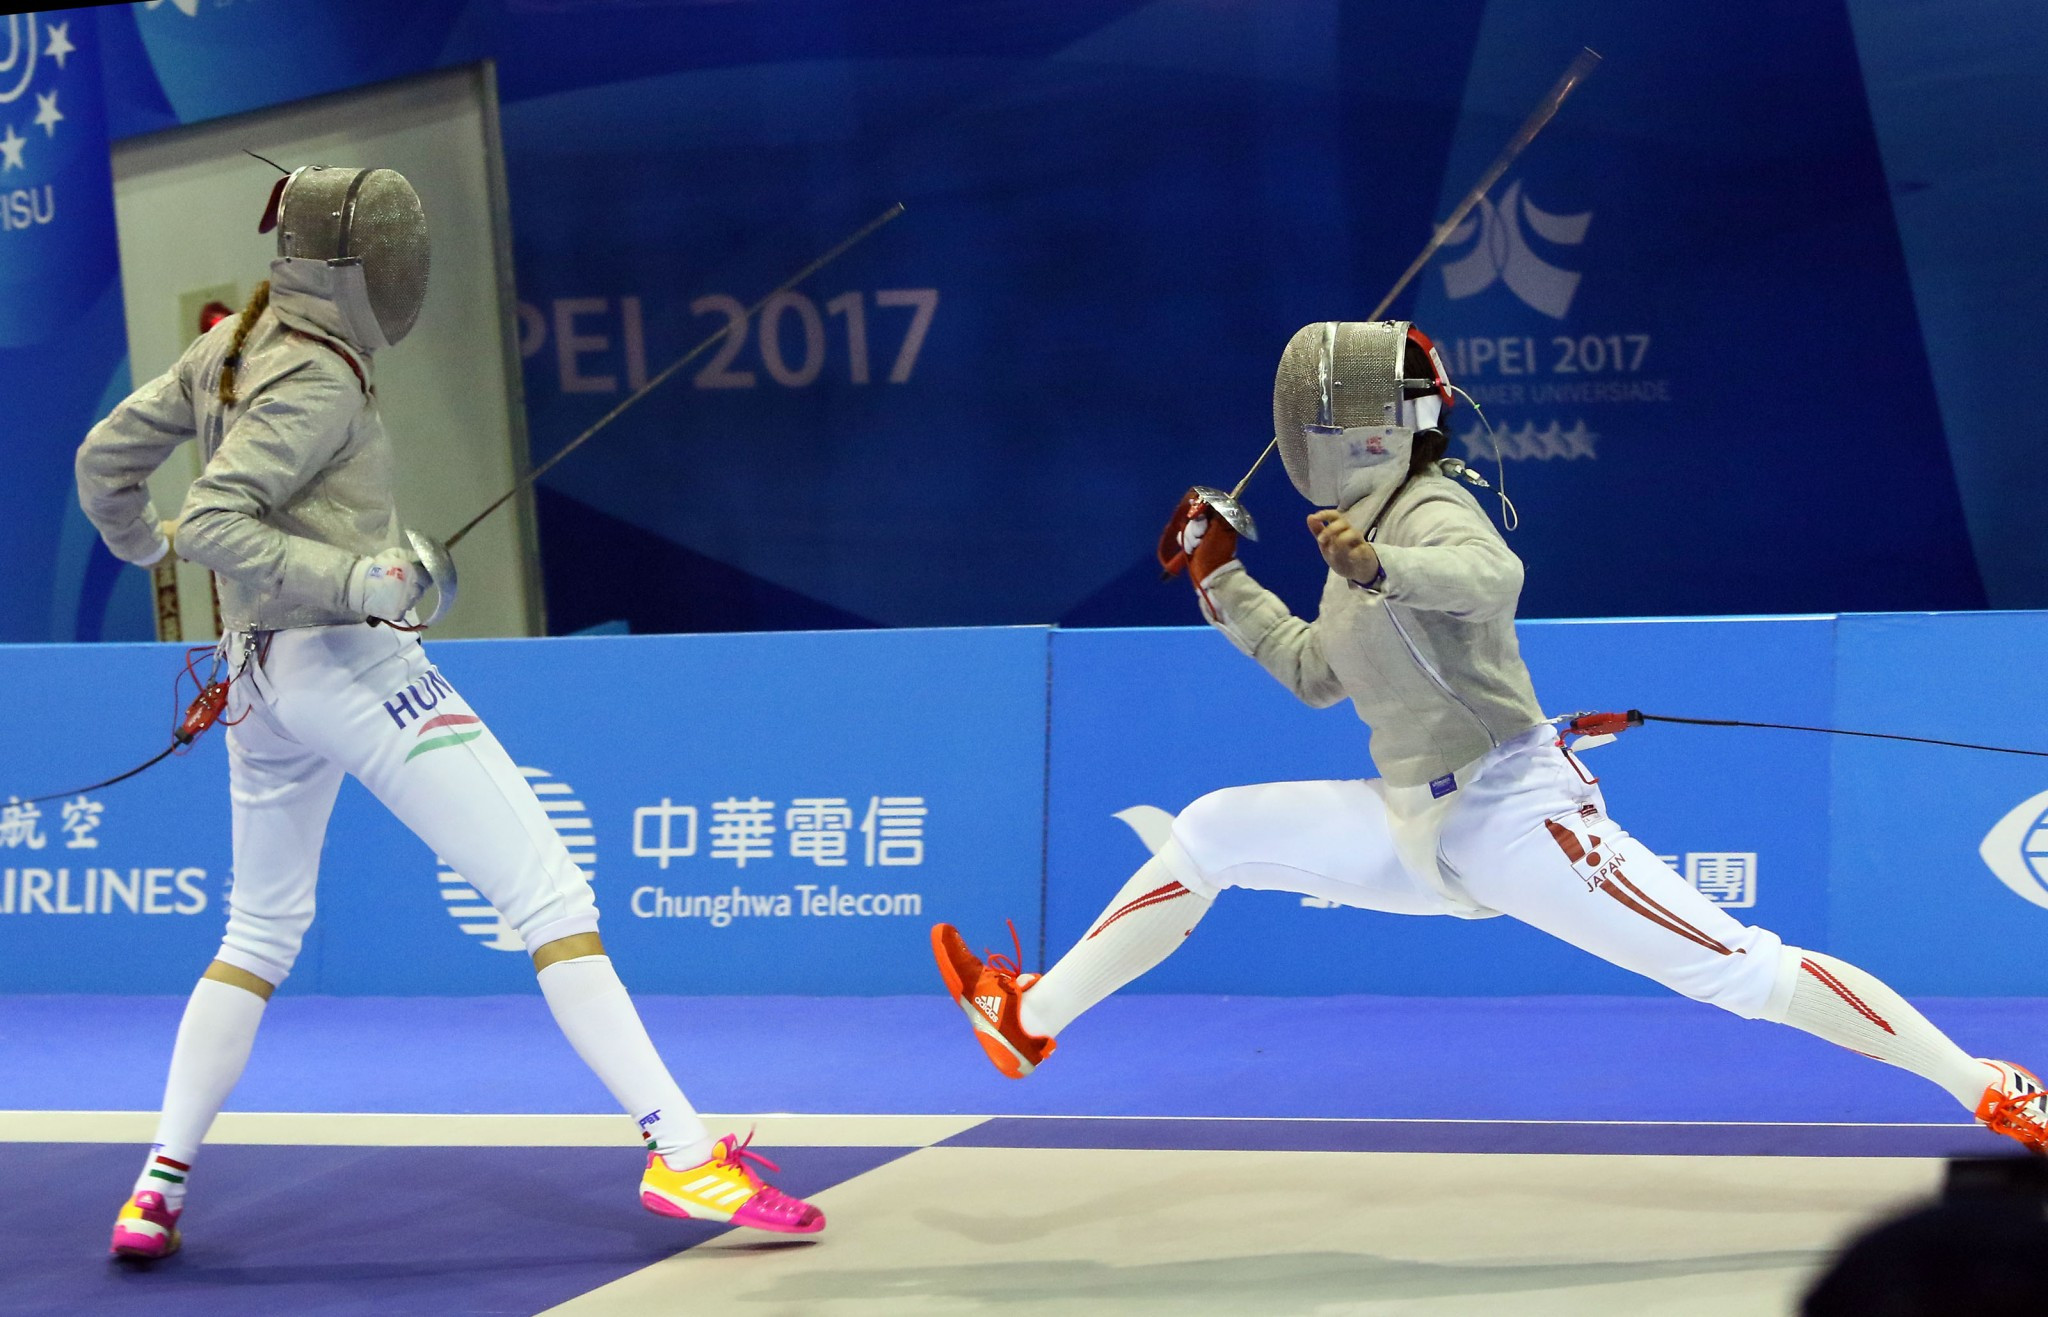 Japan earn double gold as fencing draws to a close at Taipei 2017